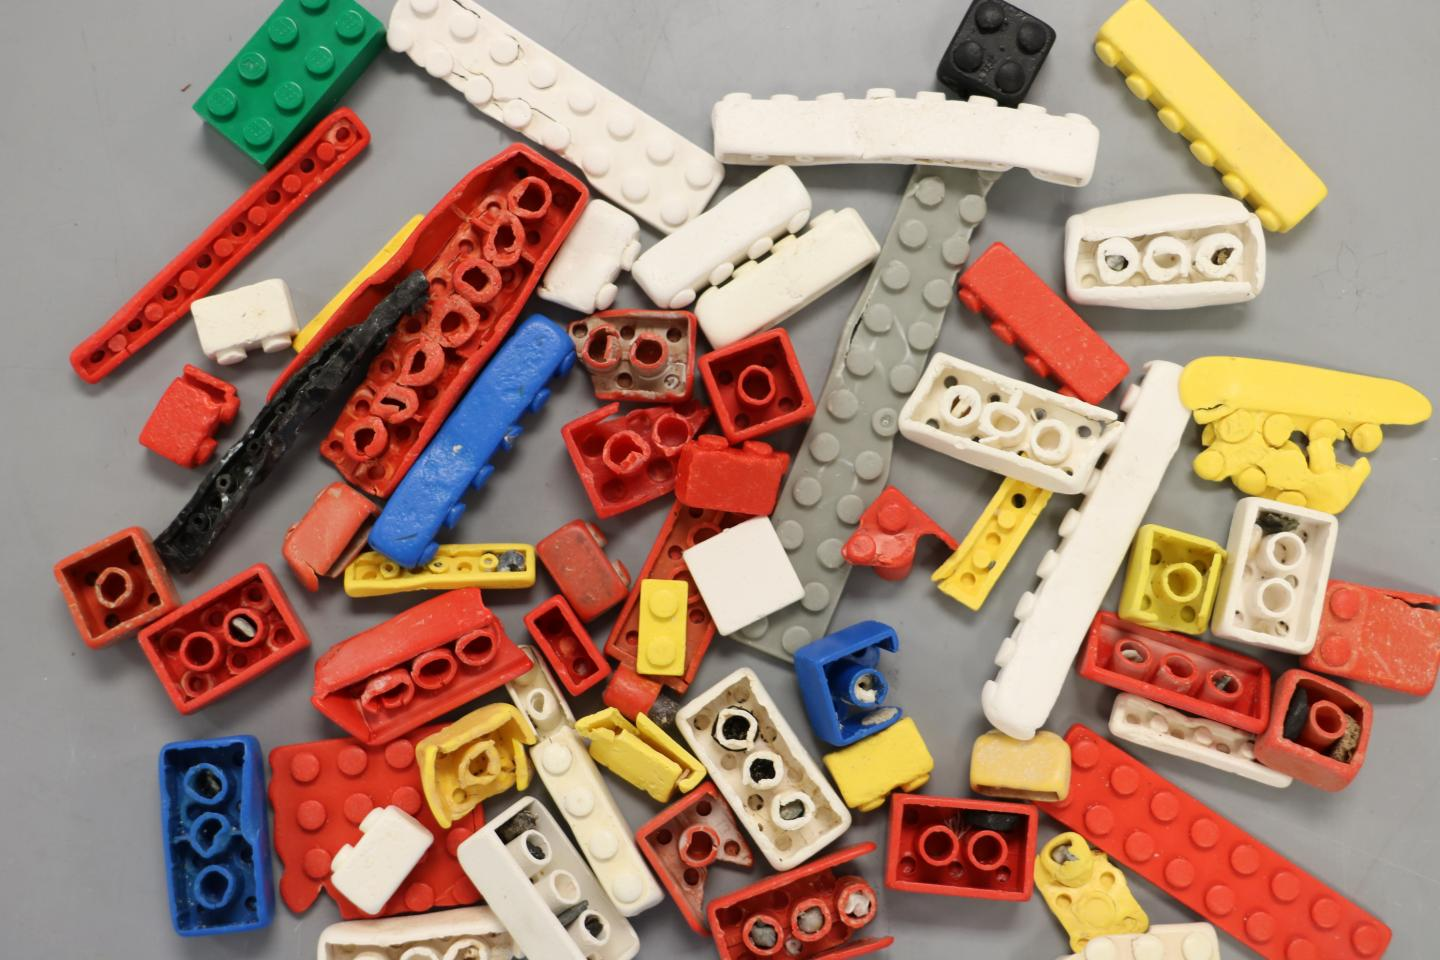 Details of the LEGO designer decompose in the ocean for about 1.3 thousand years